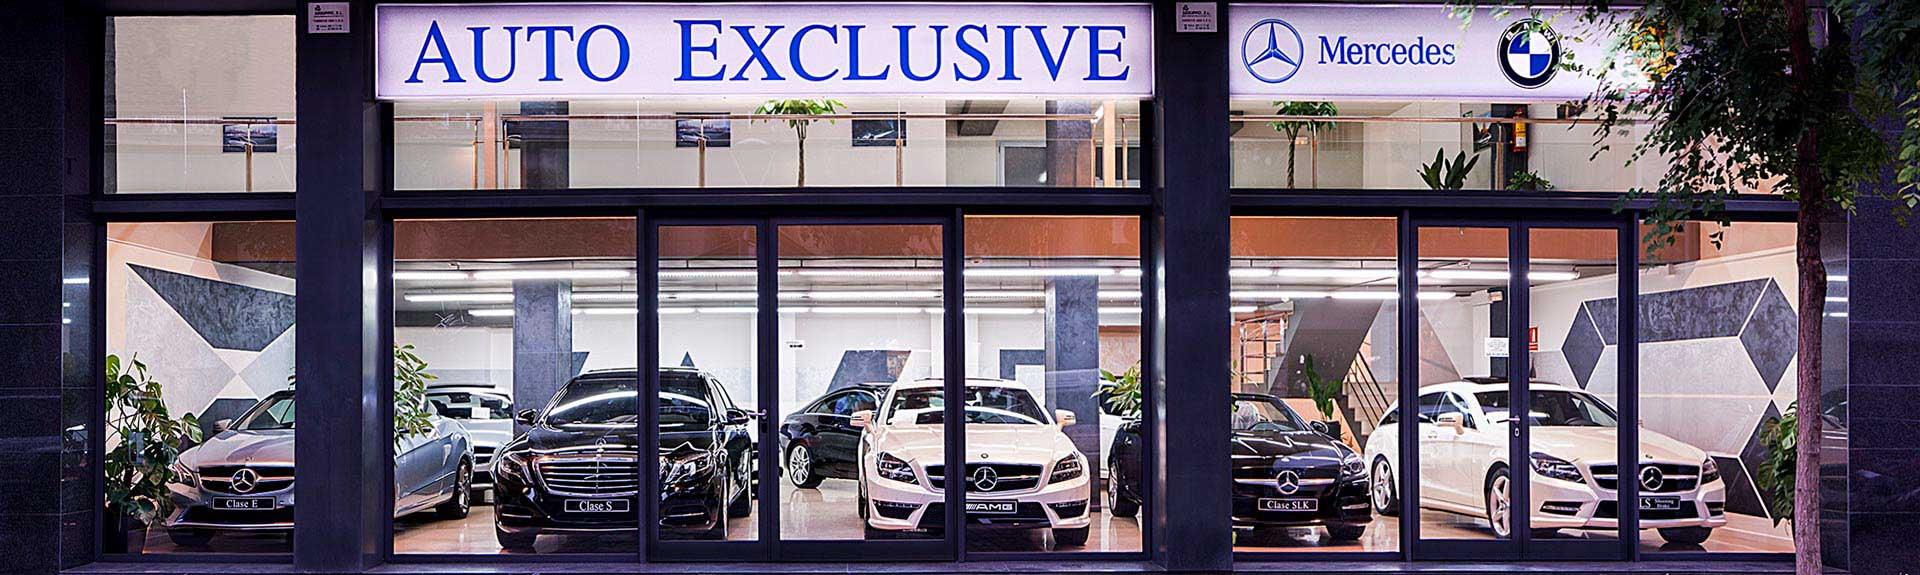 Escaparate - Auto Exclusive BCN - Tu Concesionario Ocasión Mercedes Barcelona